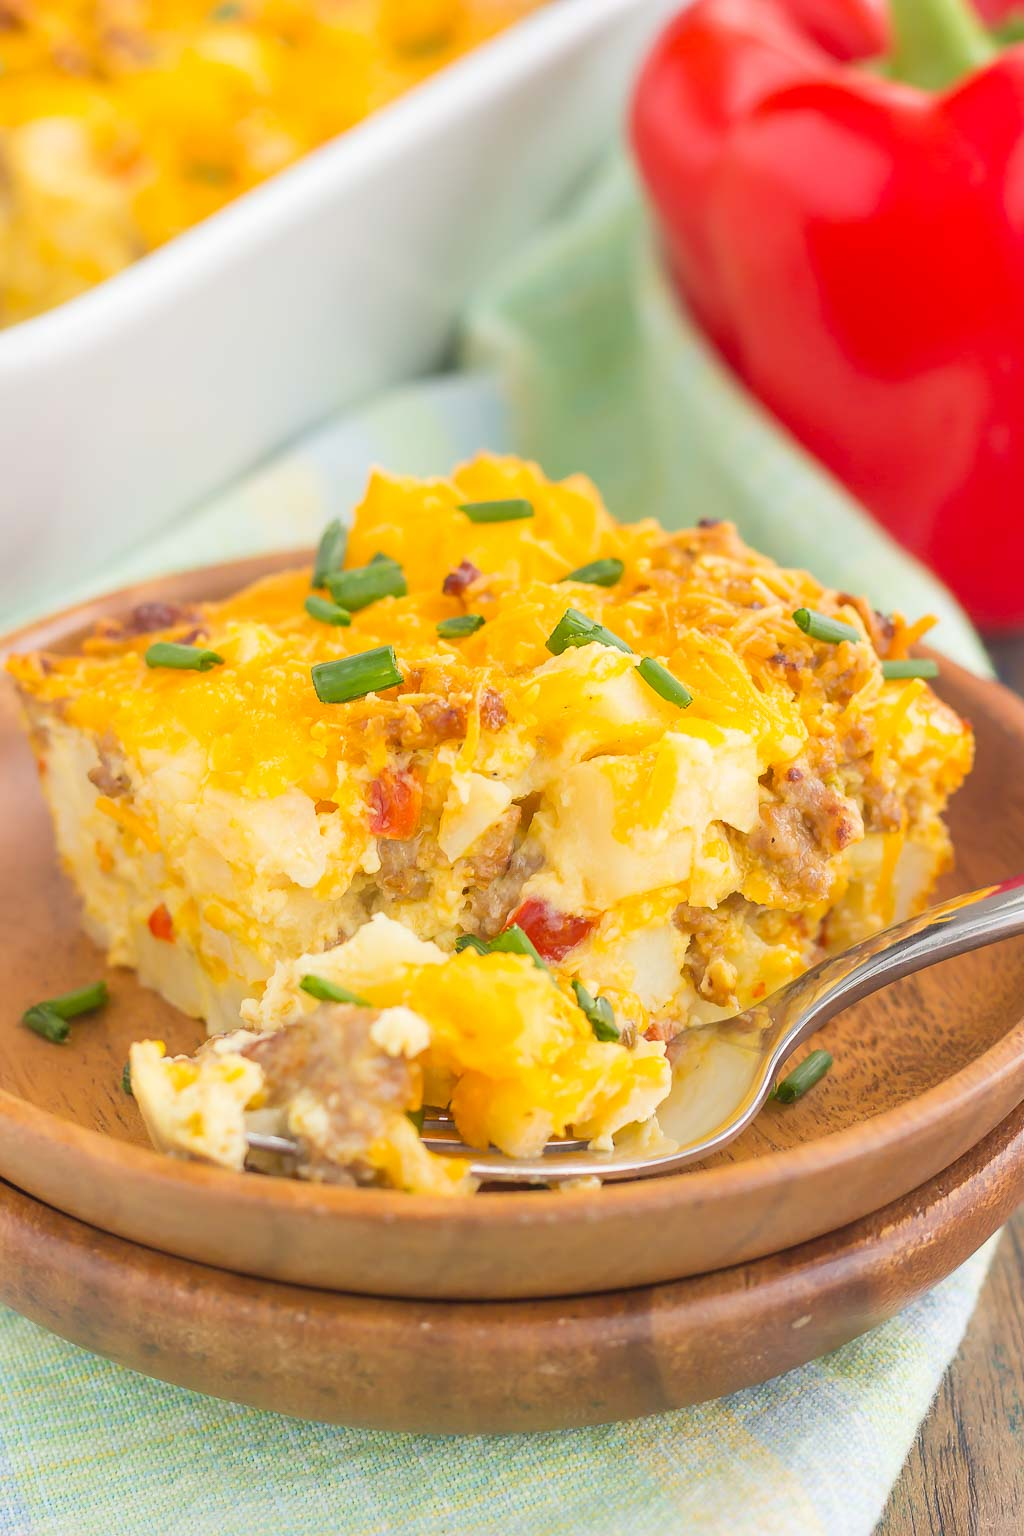 a slice of sausage hashbrown breakfast casserole on a wooden plate with a fork.